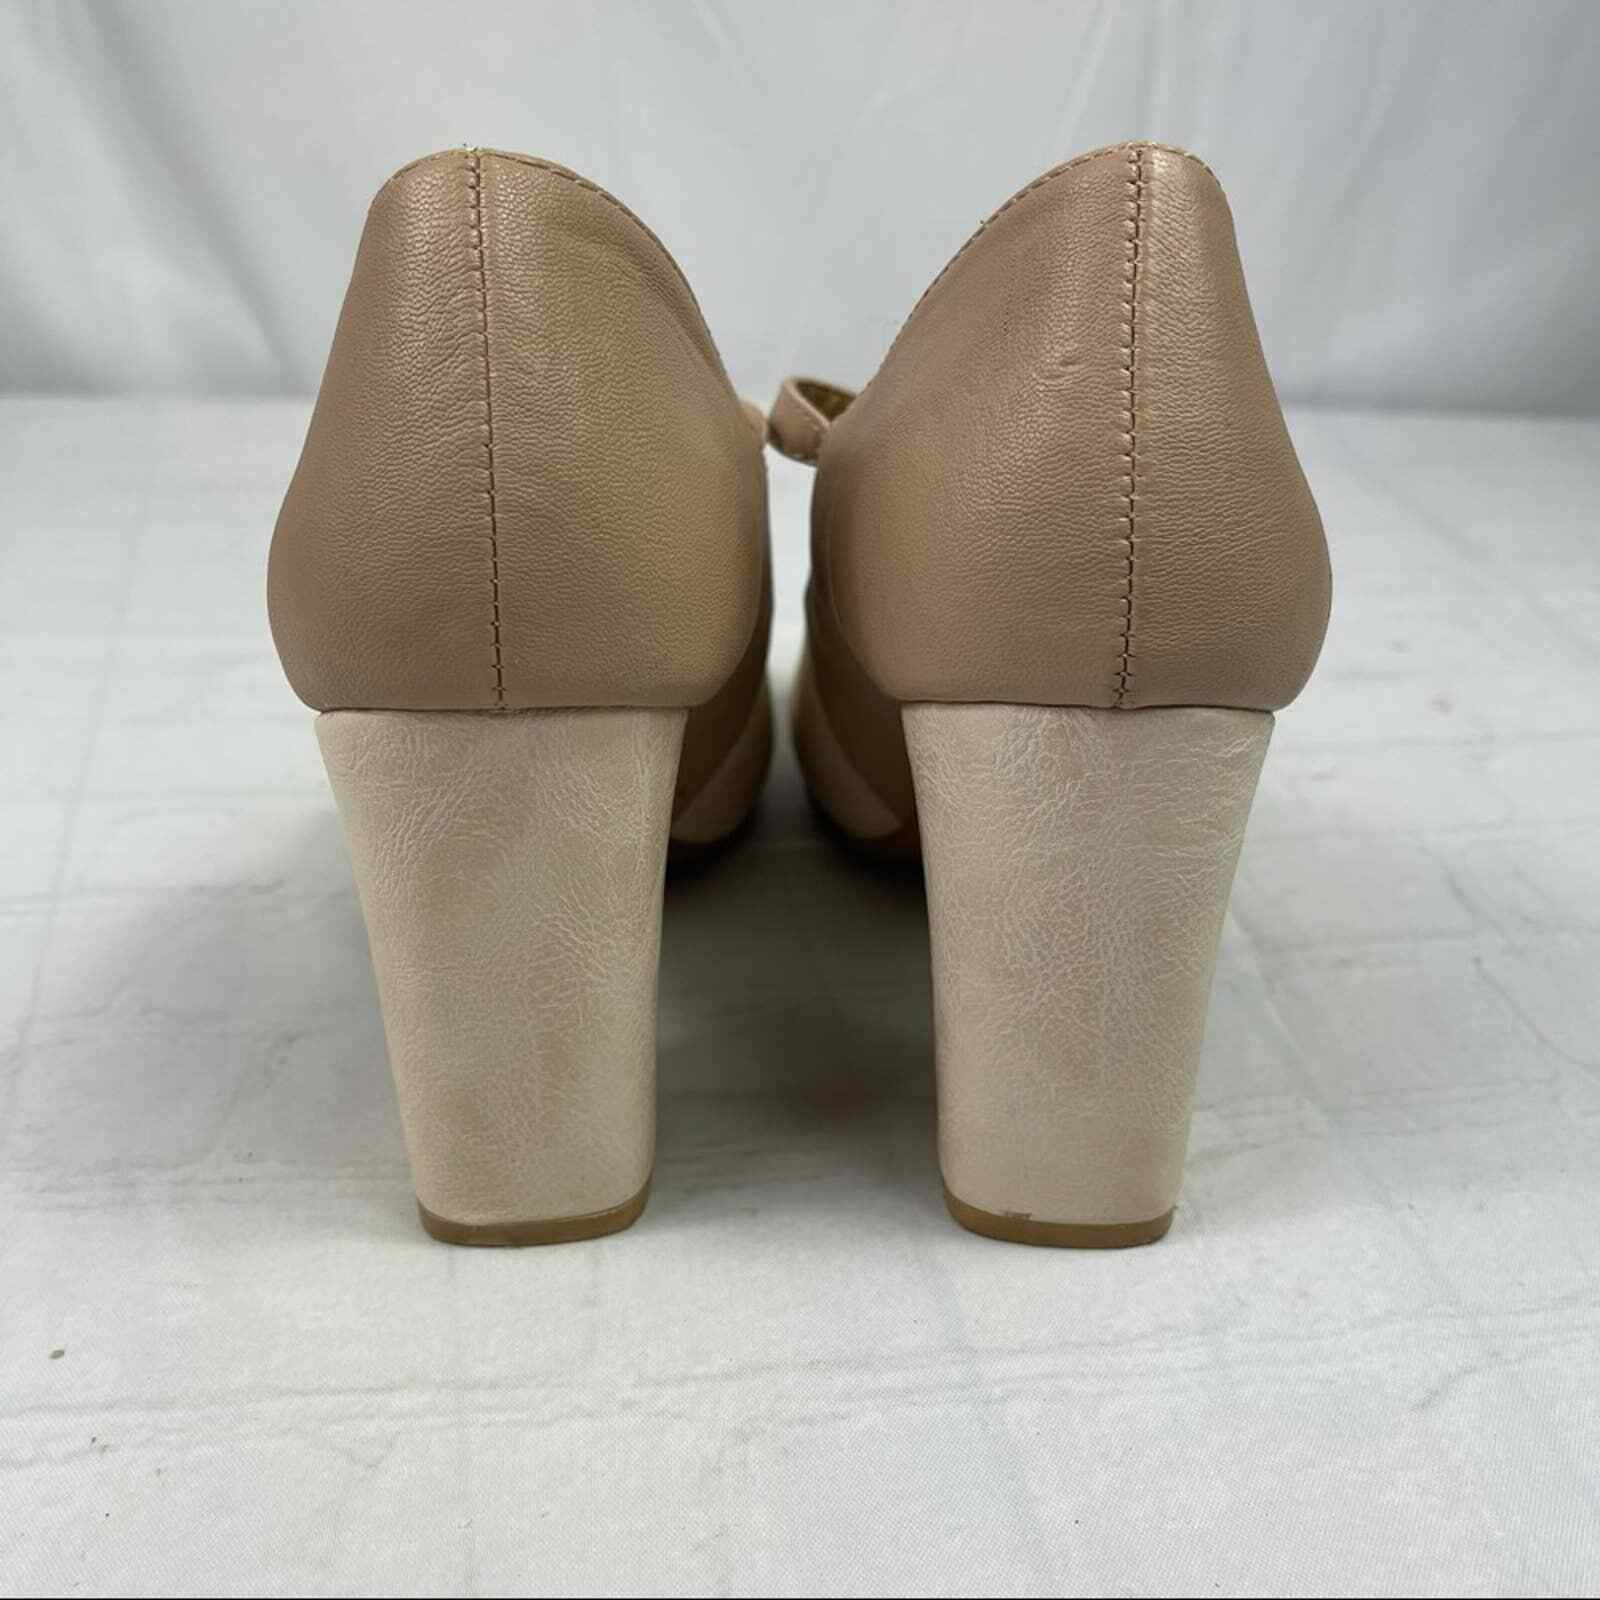 Jelly pop nude bow Mary Jane pumps - image 8